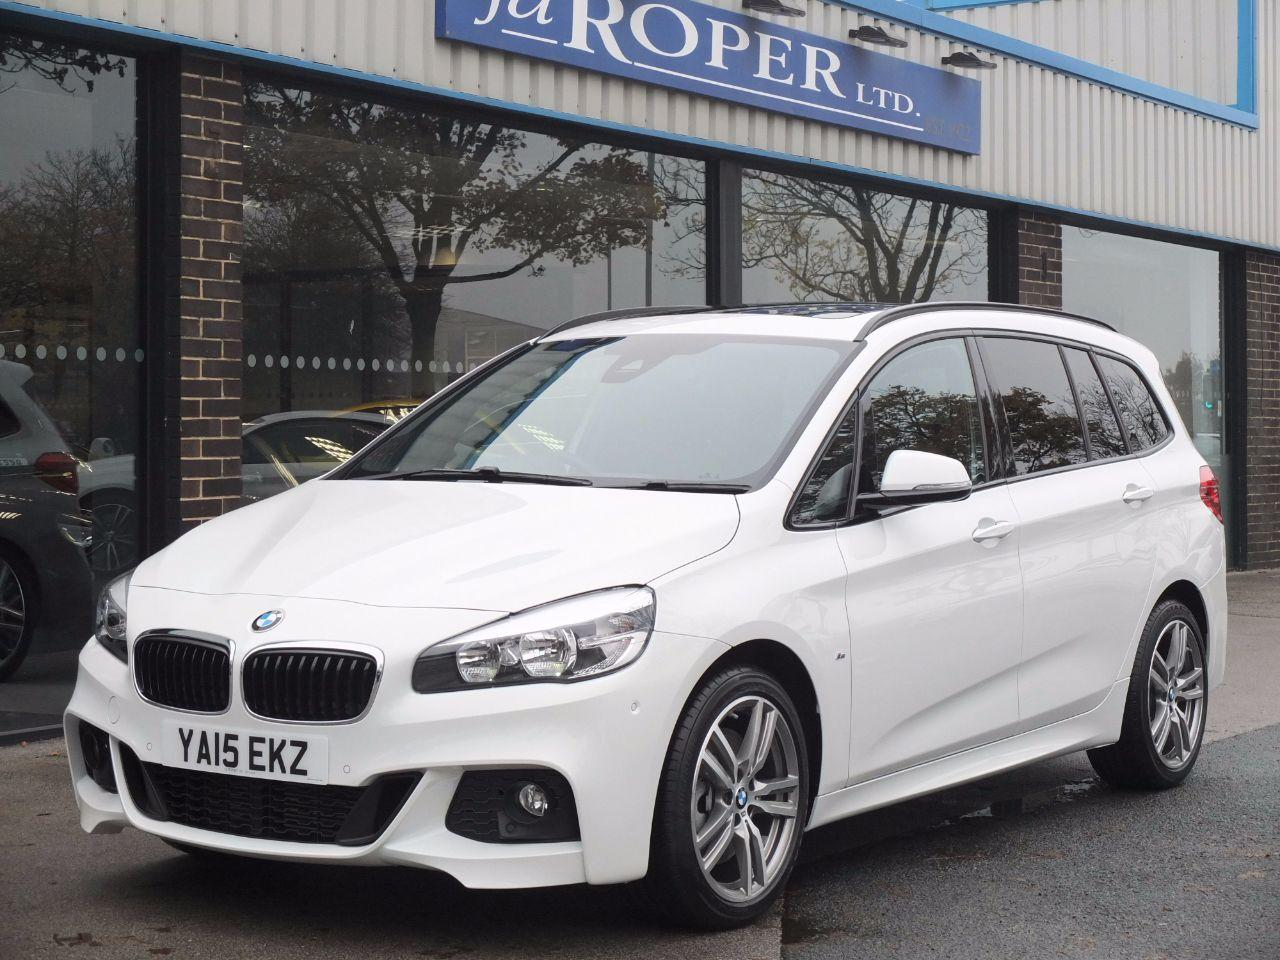 BMW 2 Series 2.0 Gran Tourer 220d xDrive M Sport Auto (7 Seats, Four Wheel Drive) Estate Diesel Alpine White